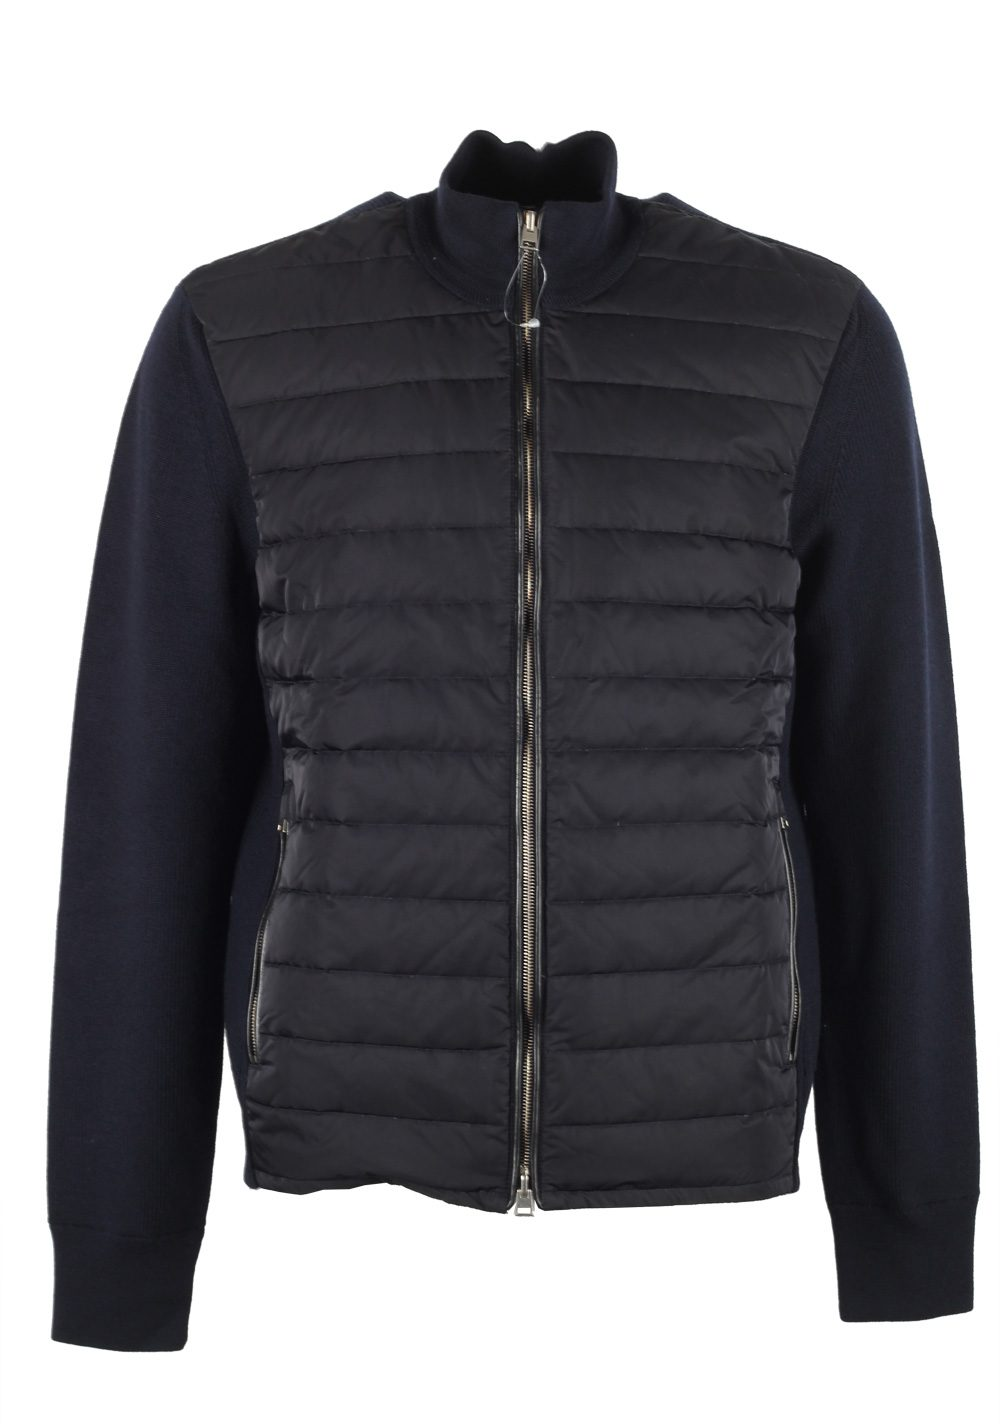 TOM FORD Blue James Bond Spectre Knitted Sleeve Bomber Jacket | Costume Limité